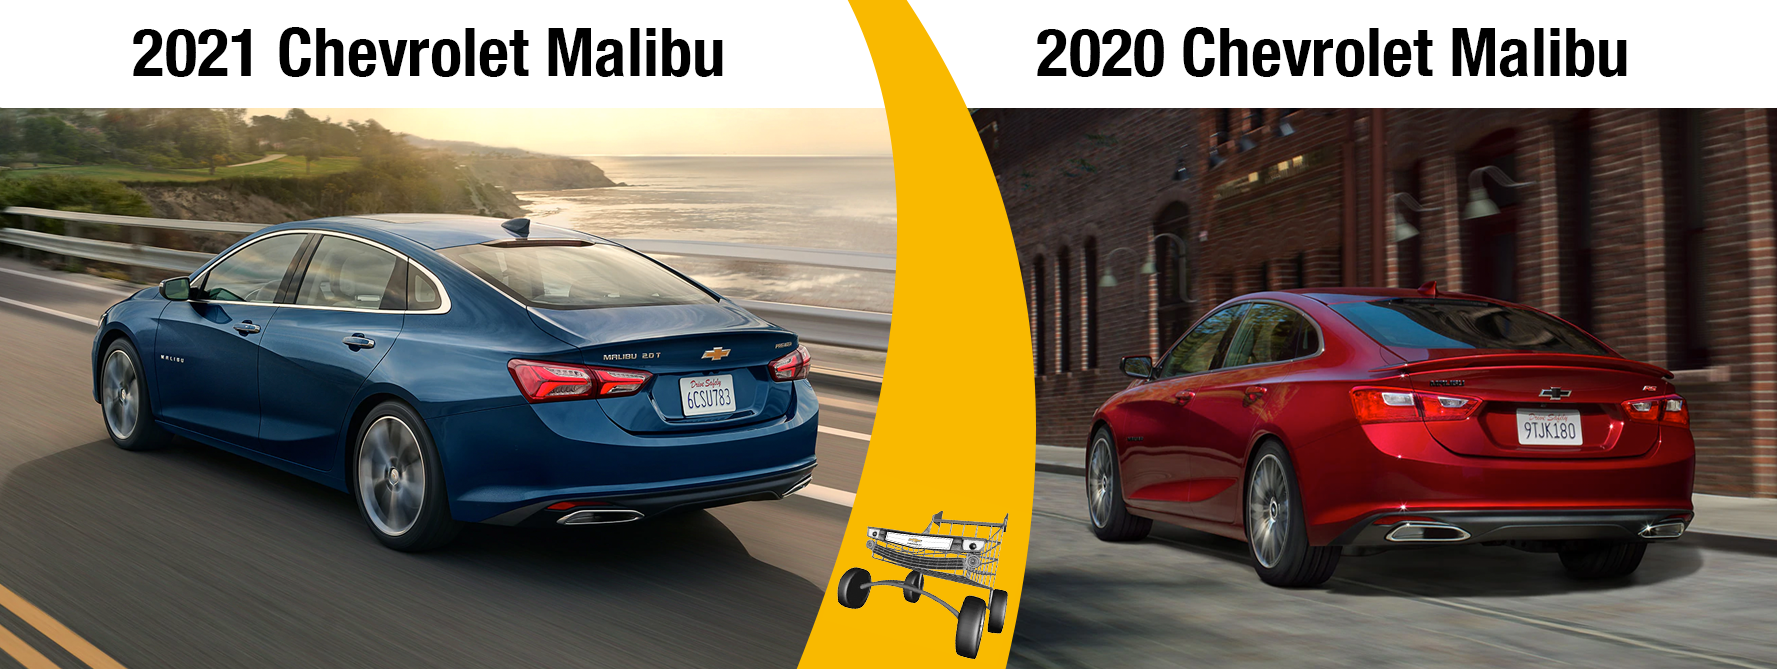 2021 Chevy Malibu Safety Features